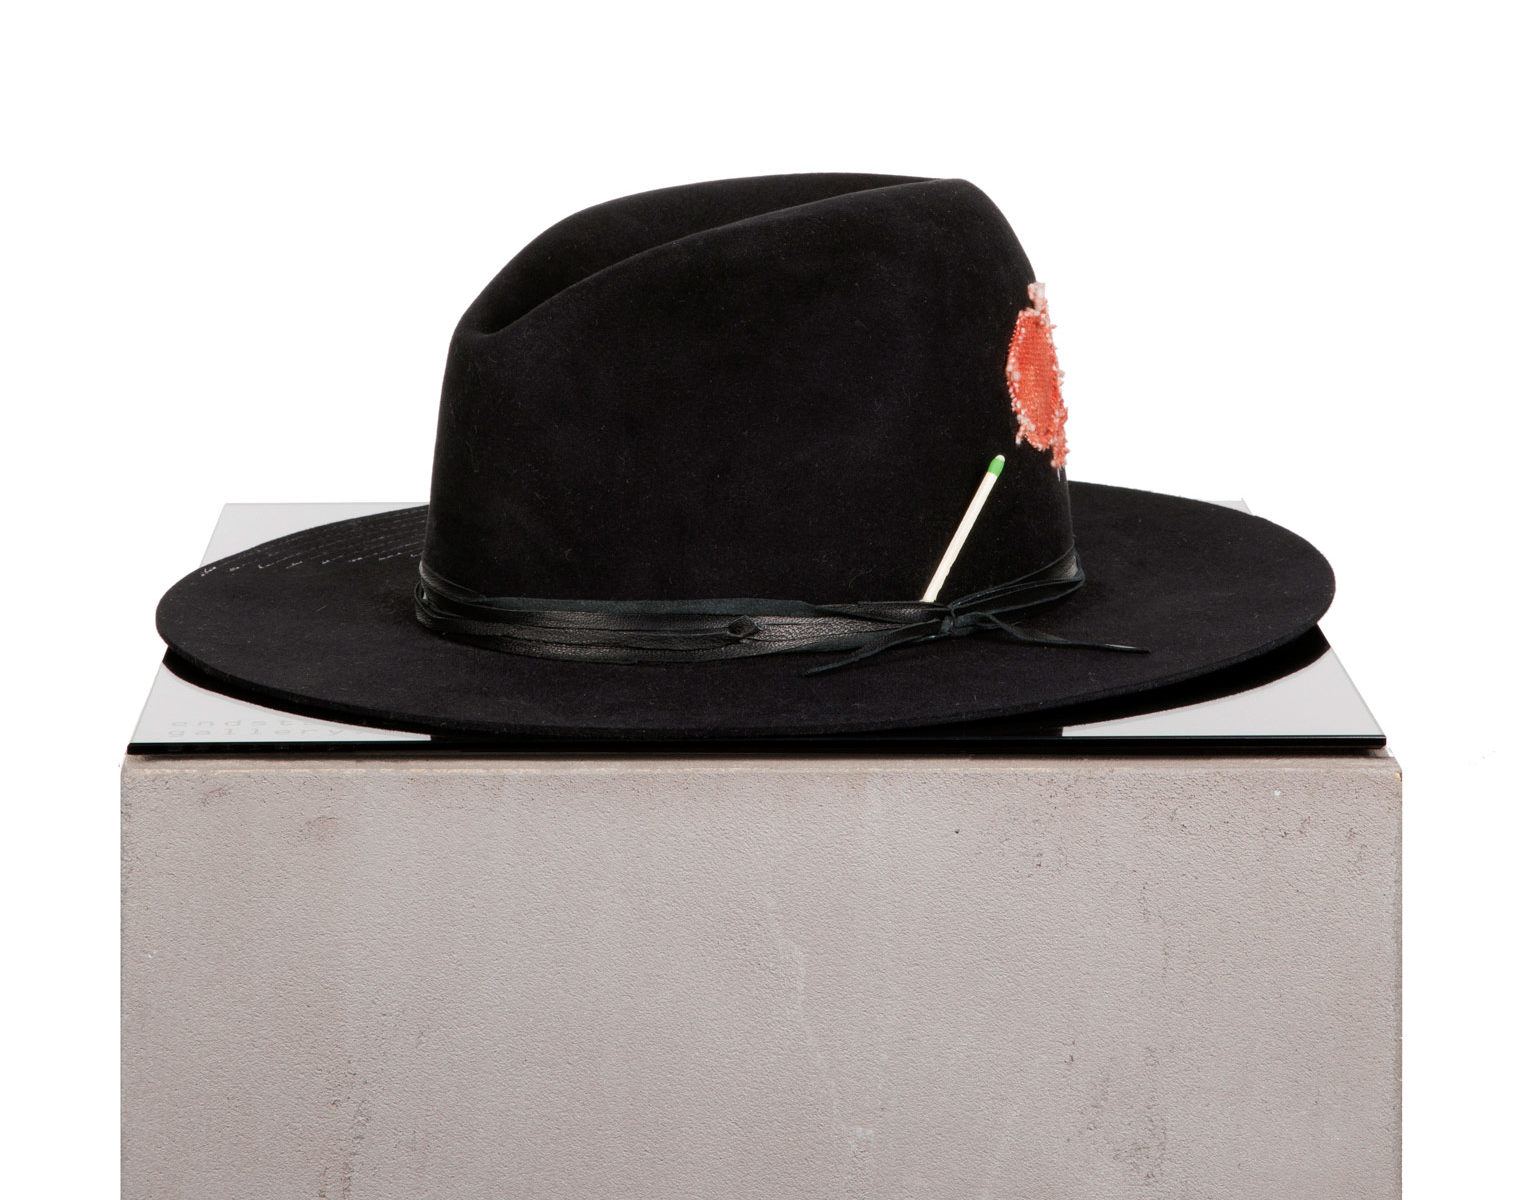 NICK FOUQUET Hat tequila sunset 1